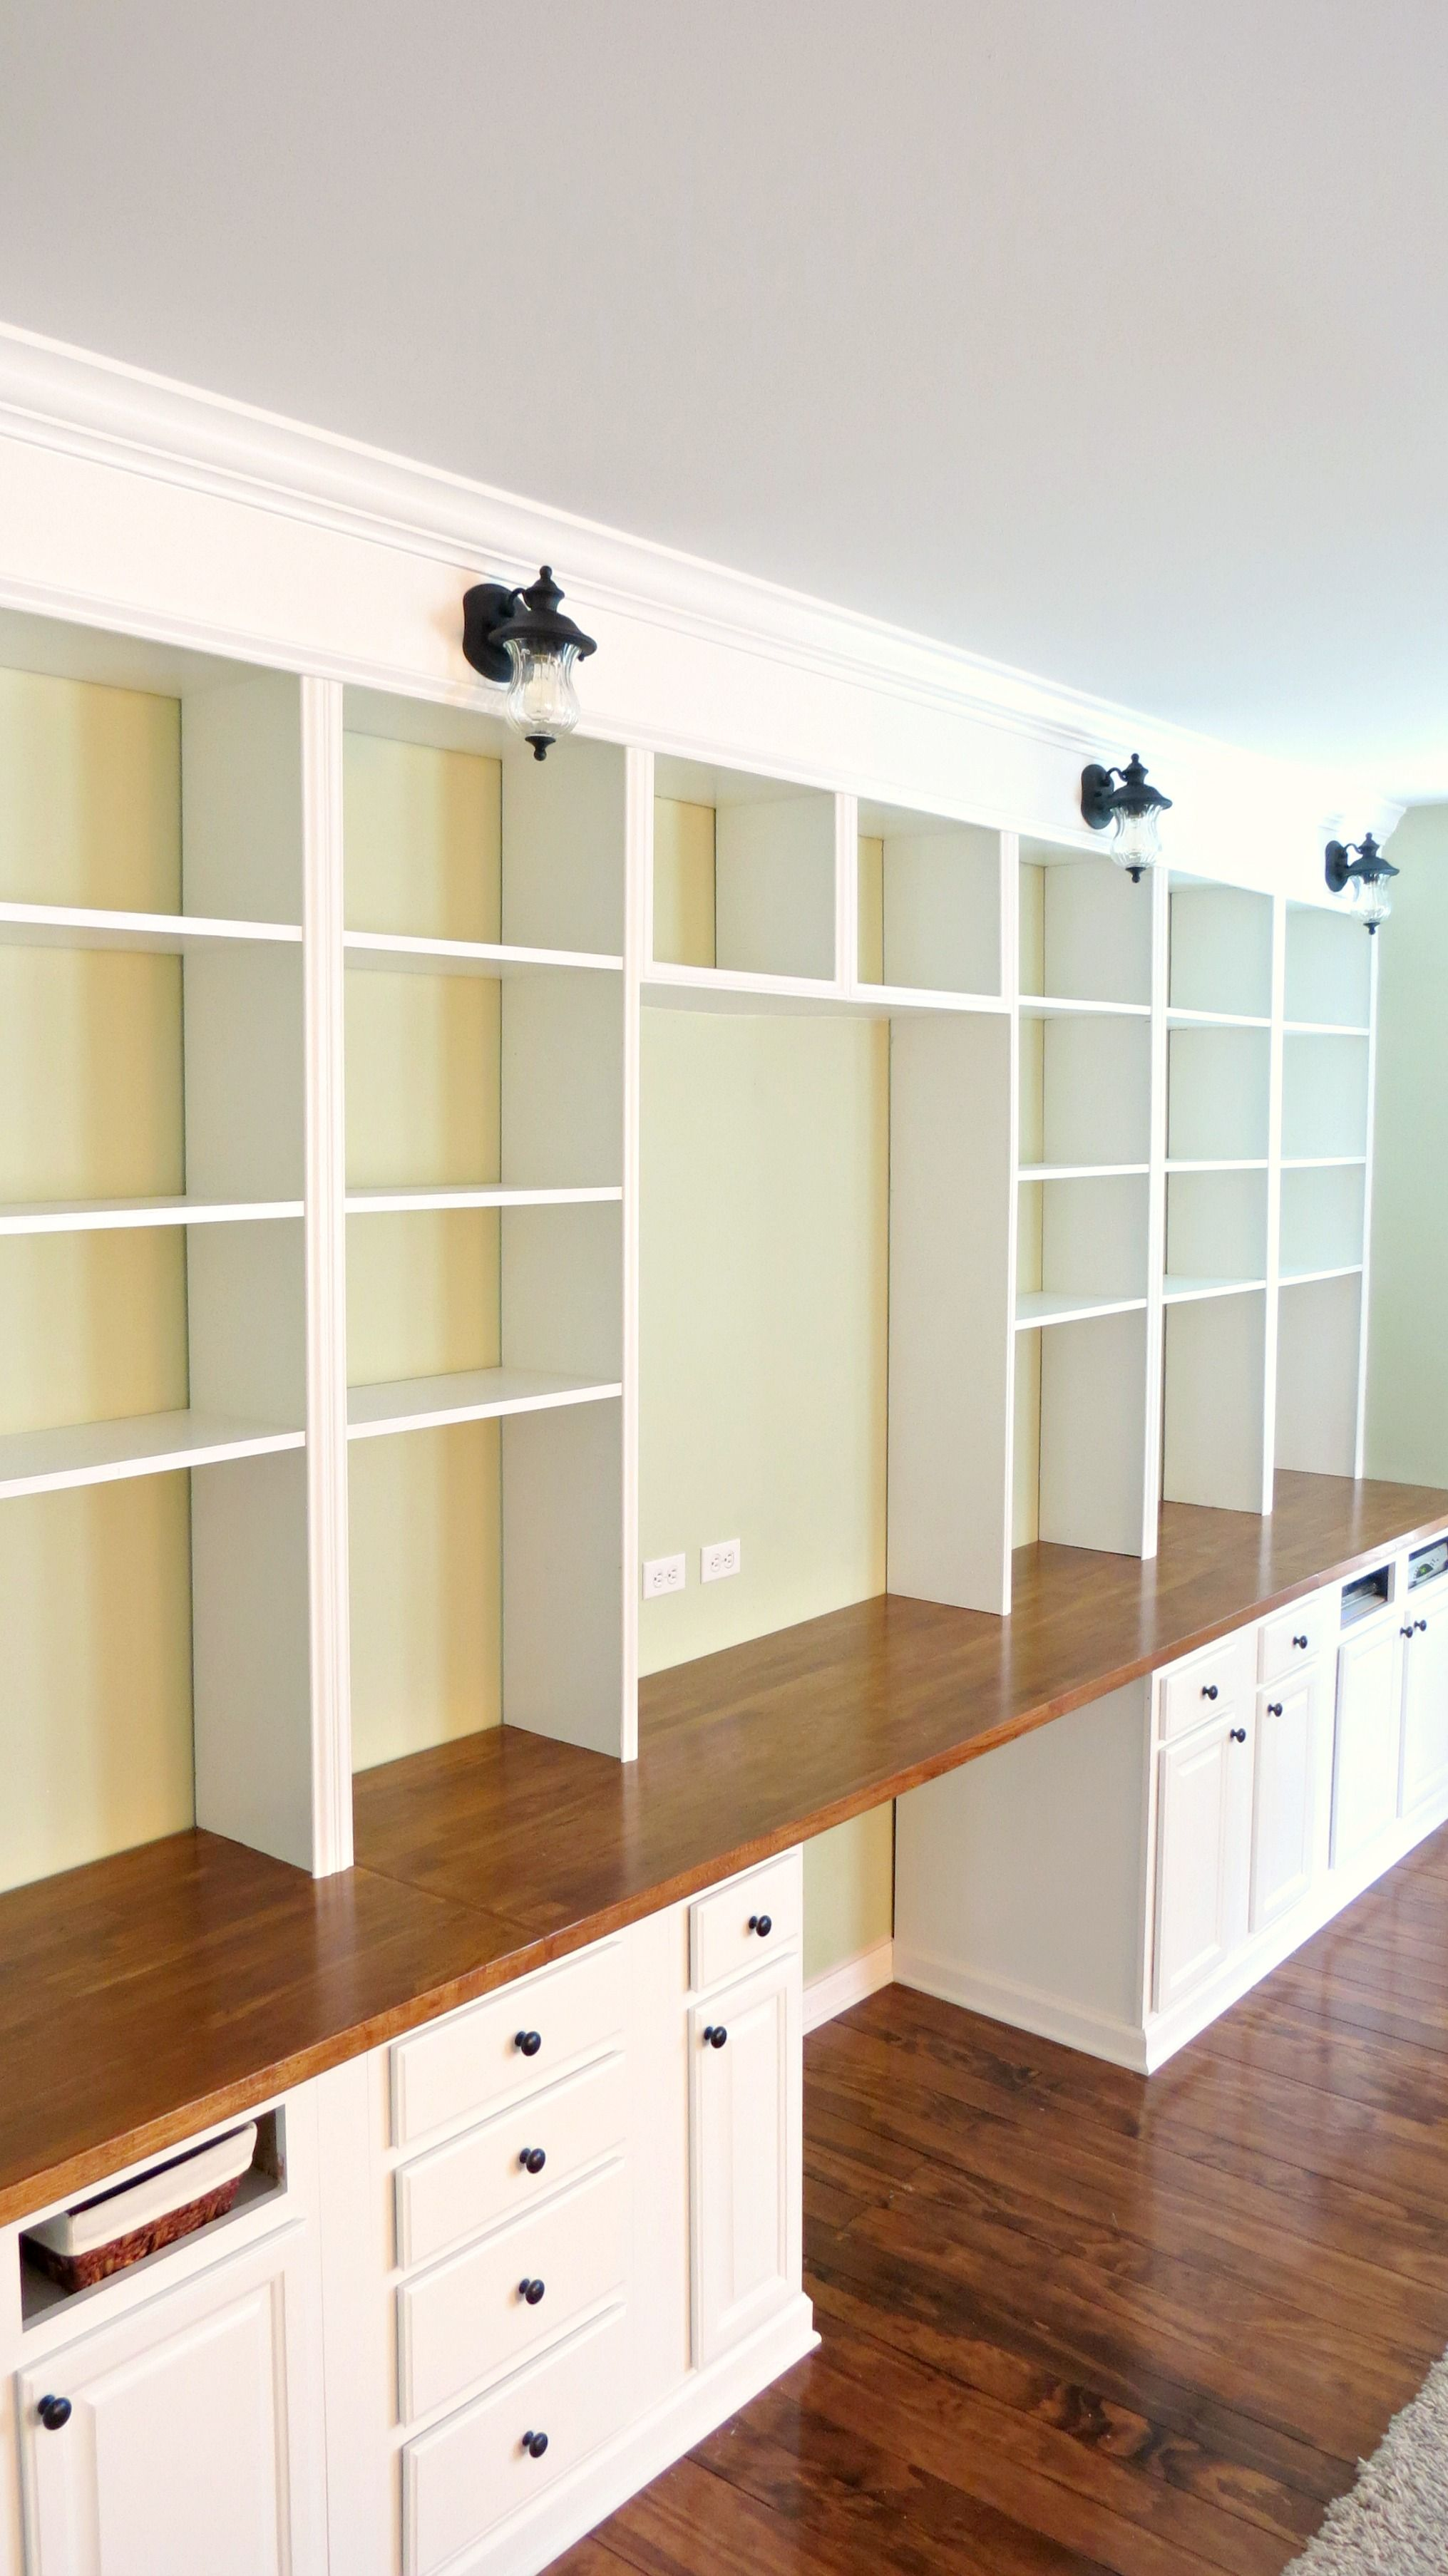 Pleasant 17 Best Ideas About Wall Shelving Units On Pinterest Shelving Largest Home Design Picture Inspirations Pitcheantrous